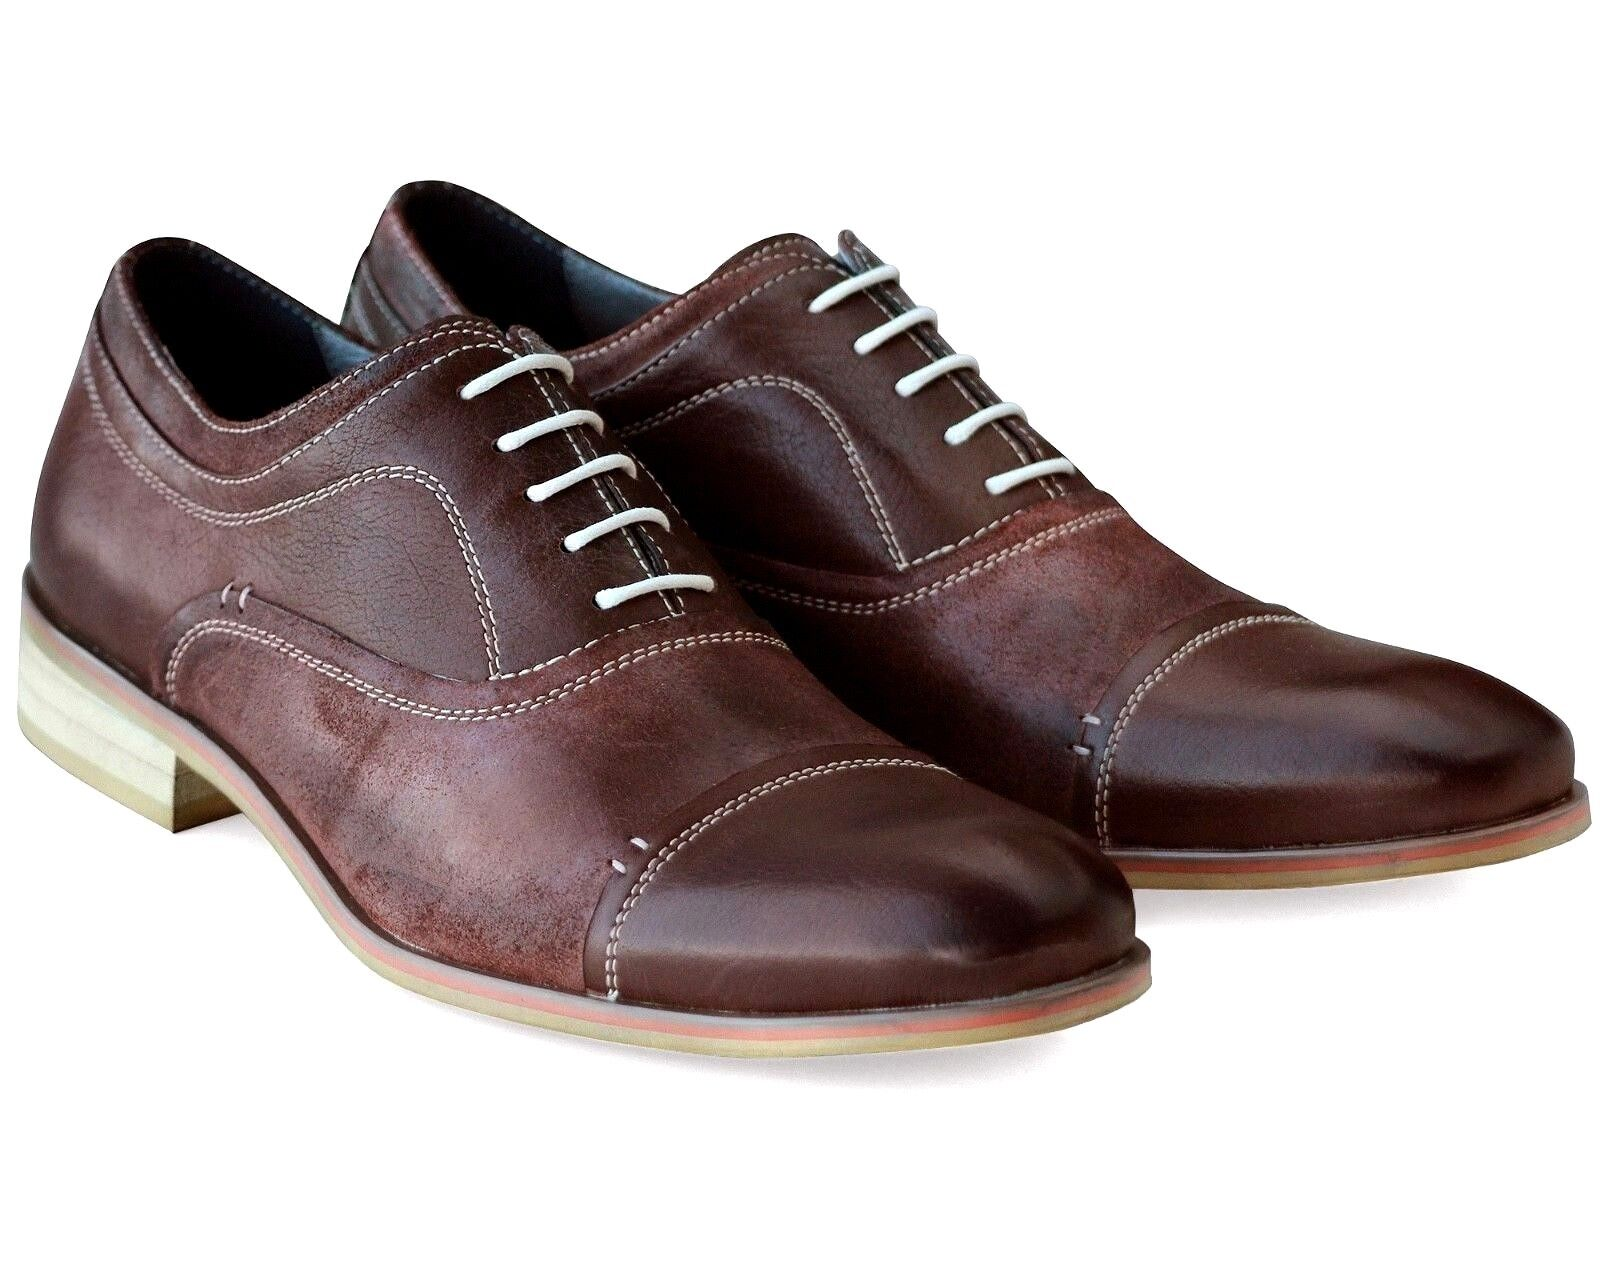 *102 UK 8 NEW MENS BROWN REAL LEATHER CASUAL SHOES COMFORT LACE UP WORK EU 42